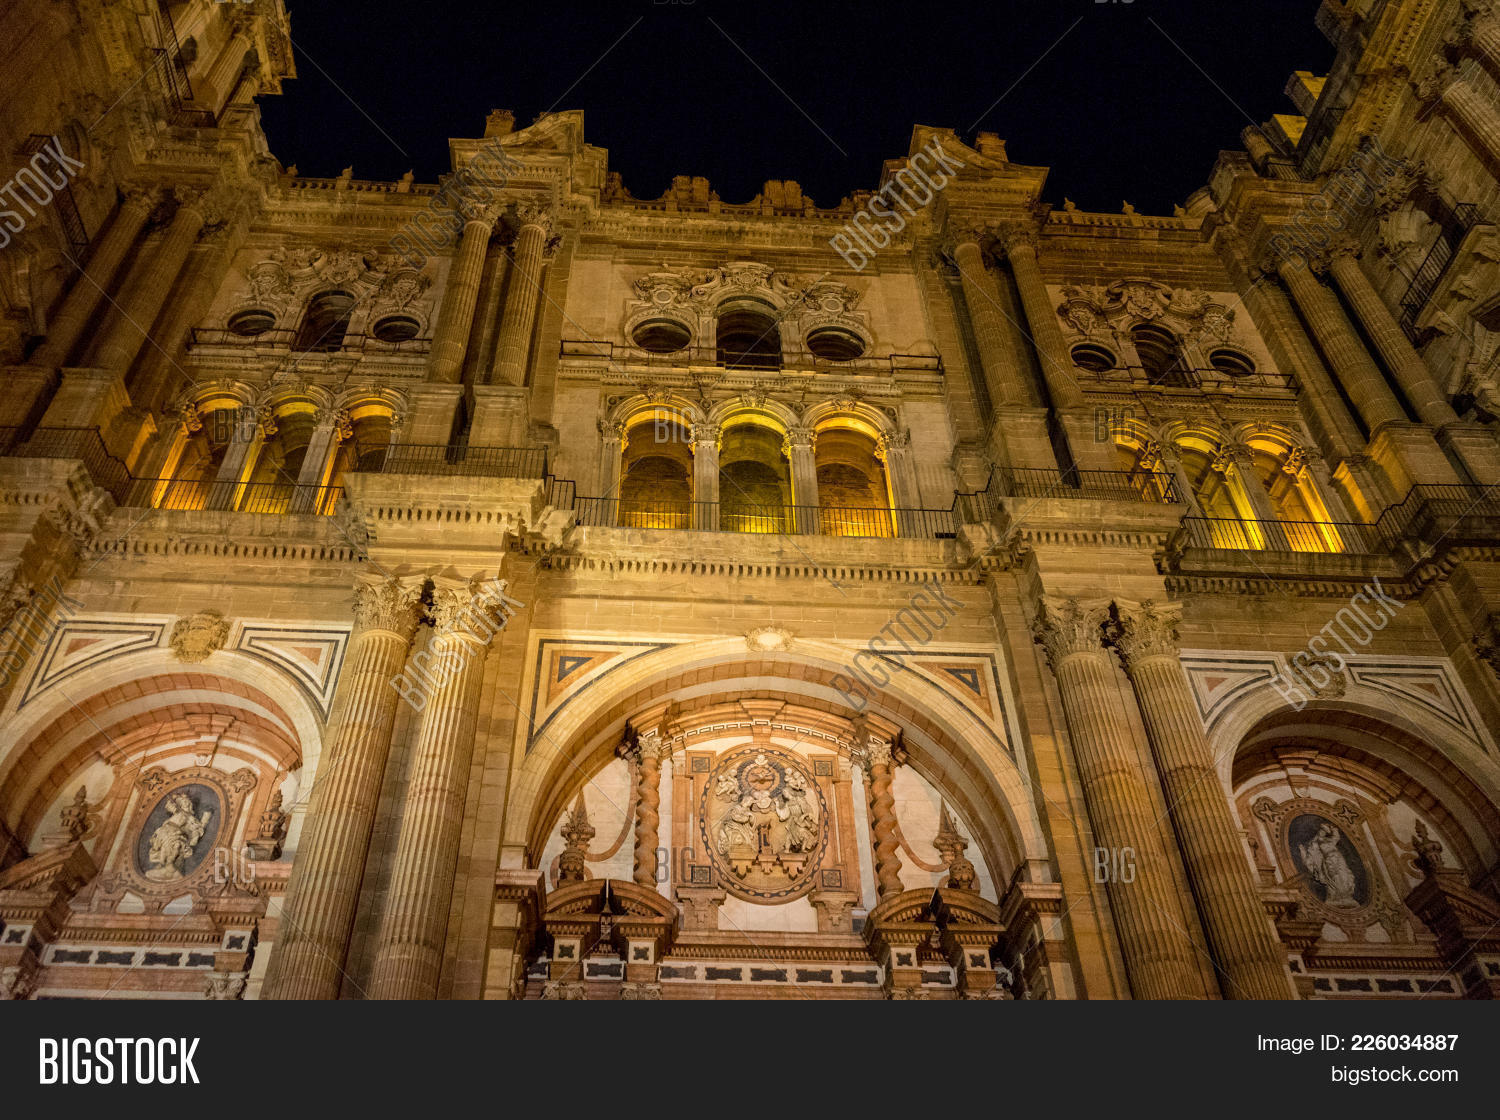 Baroque Design Of The Main Doors To The Malaga Cathedral In Malaga Andalusia Spain & Baroque Design Main Doors Malaga Image u0026 Photo | Bigstock